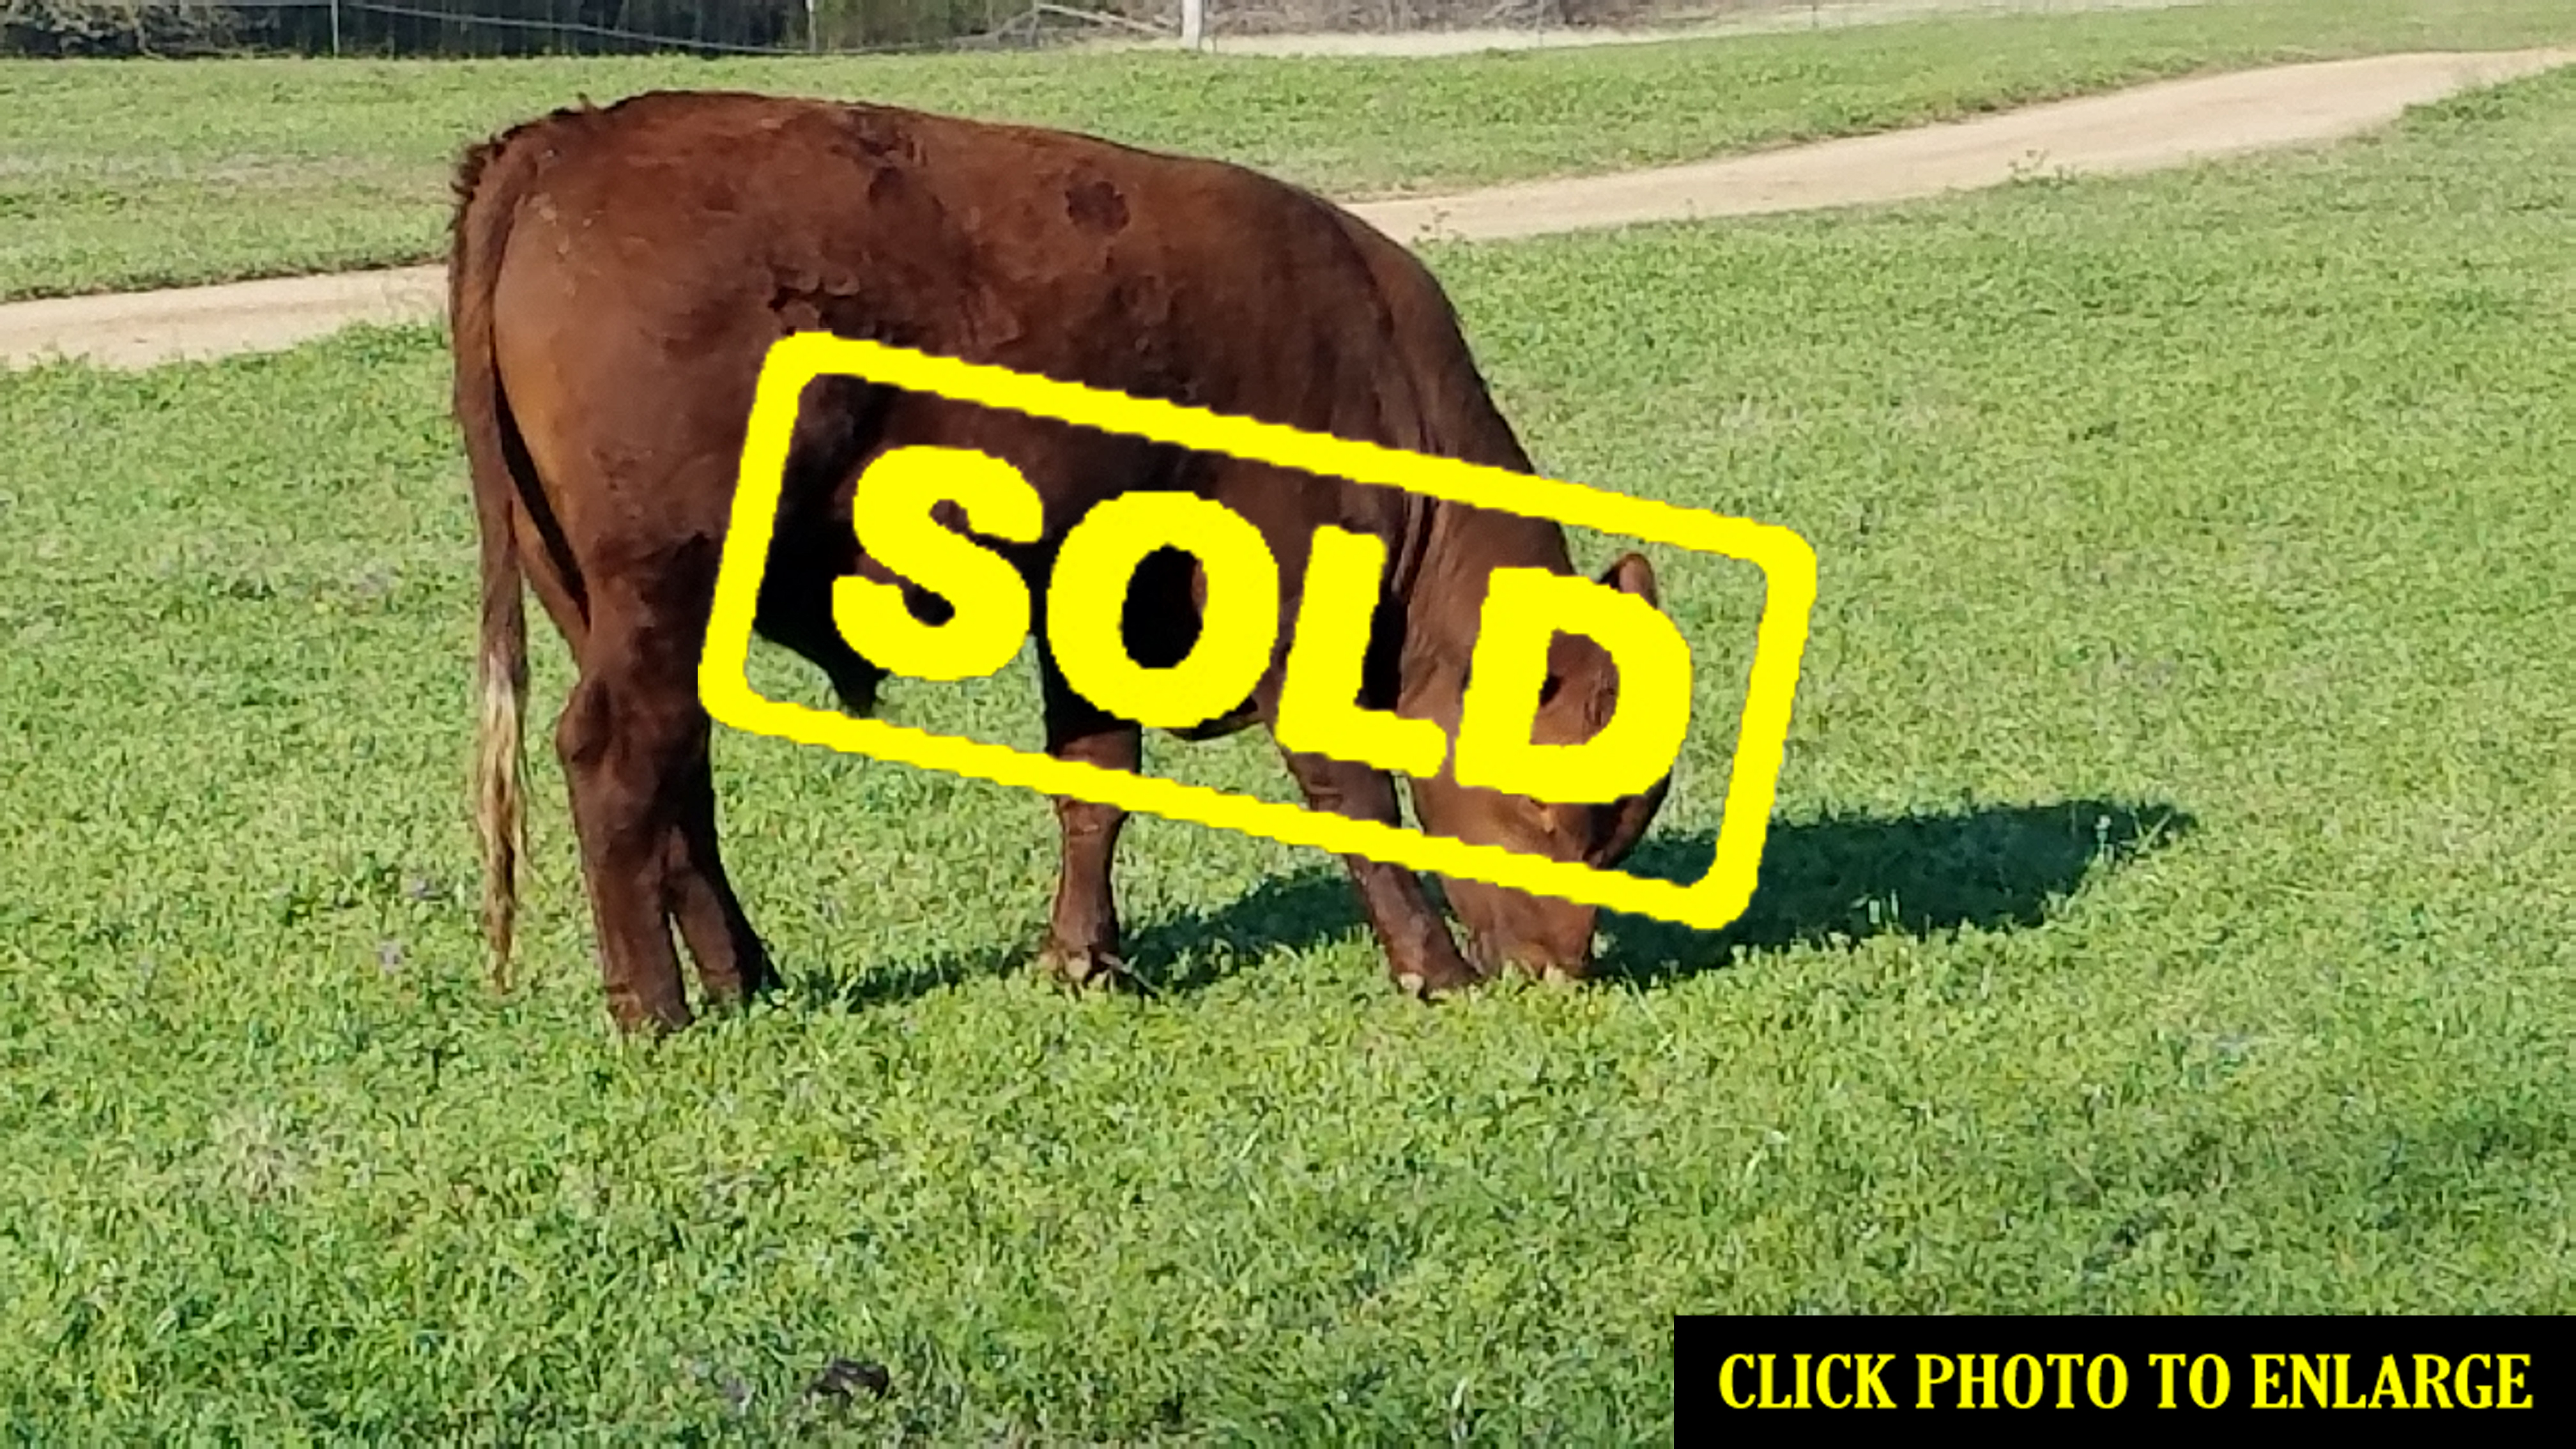 South Pole Steer For Sale